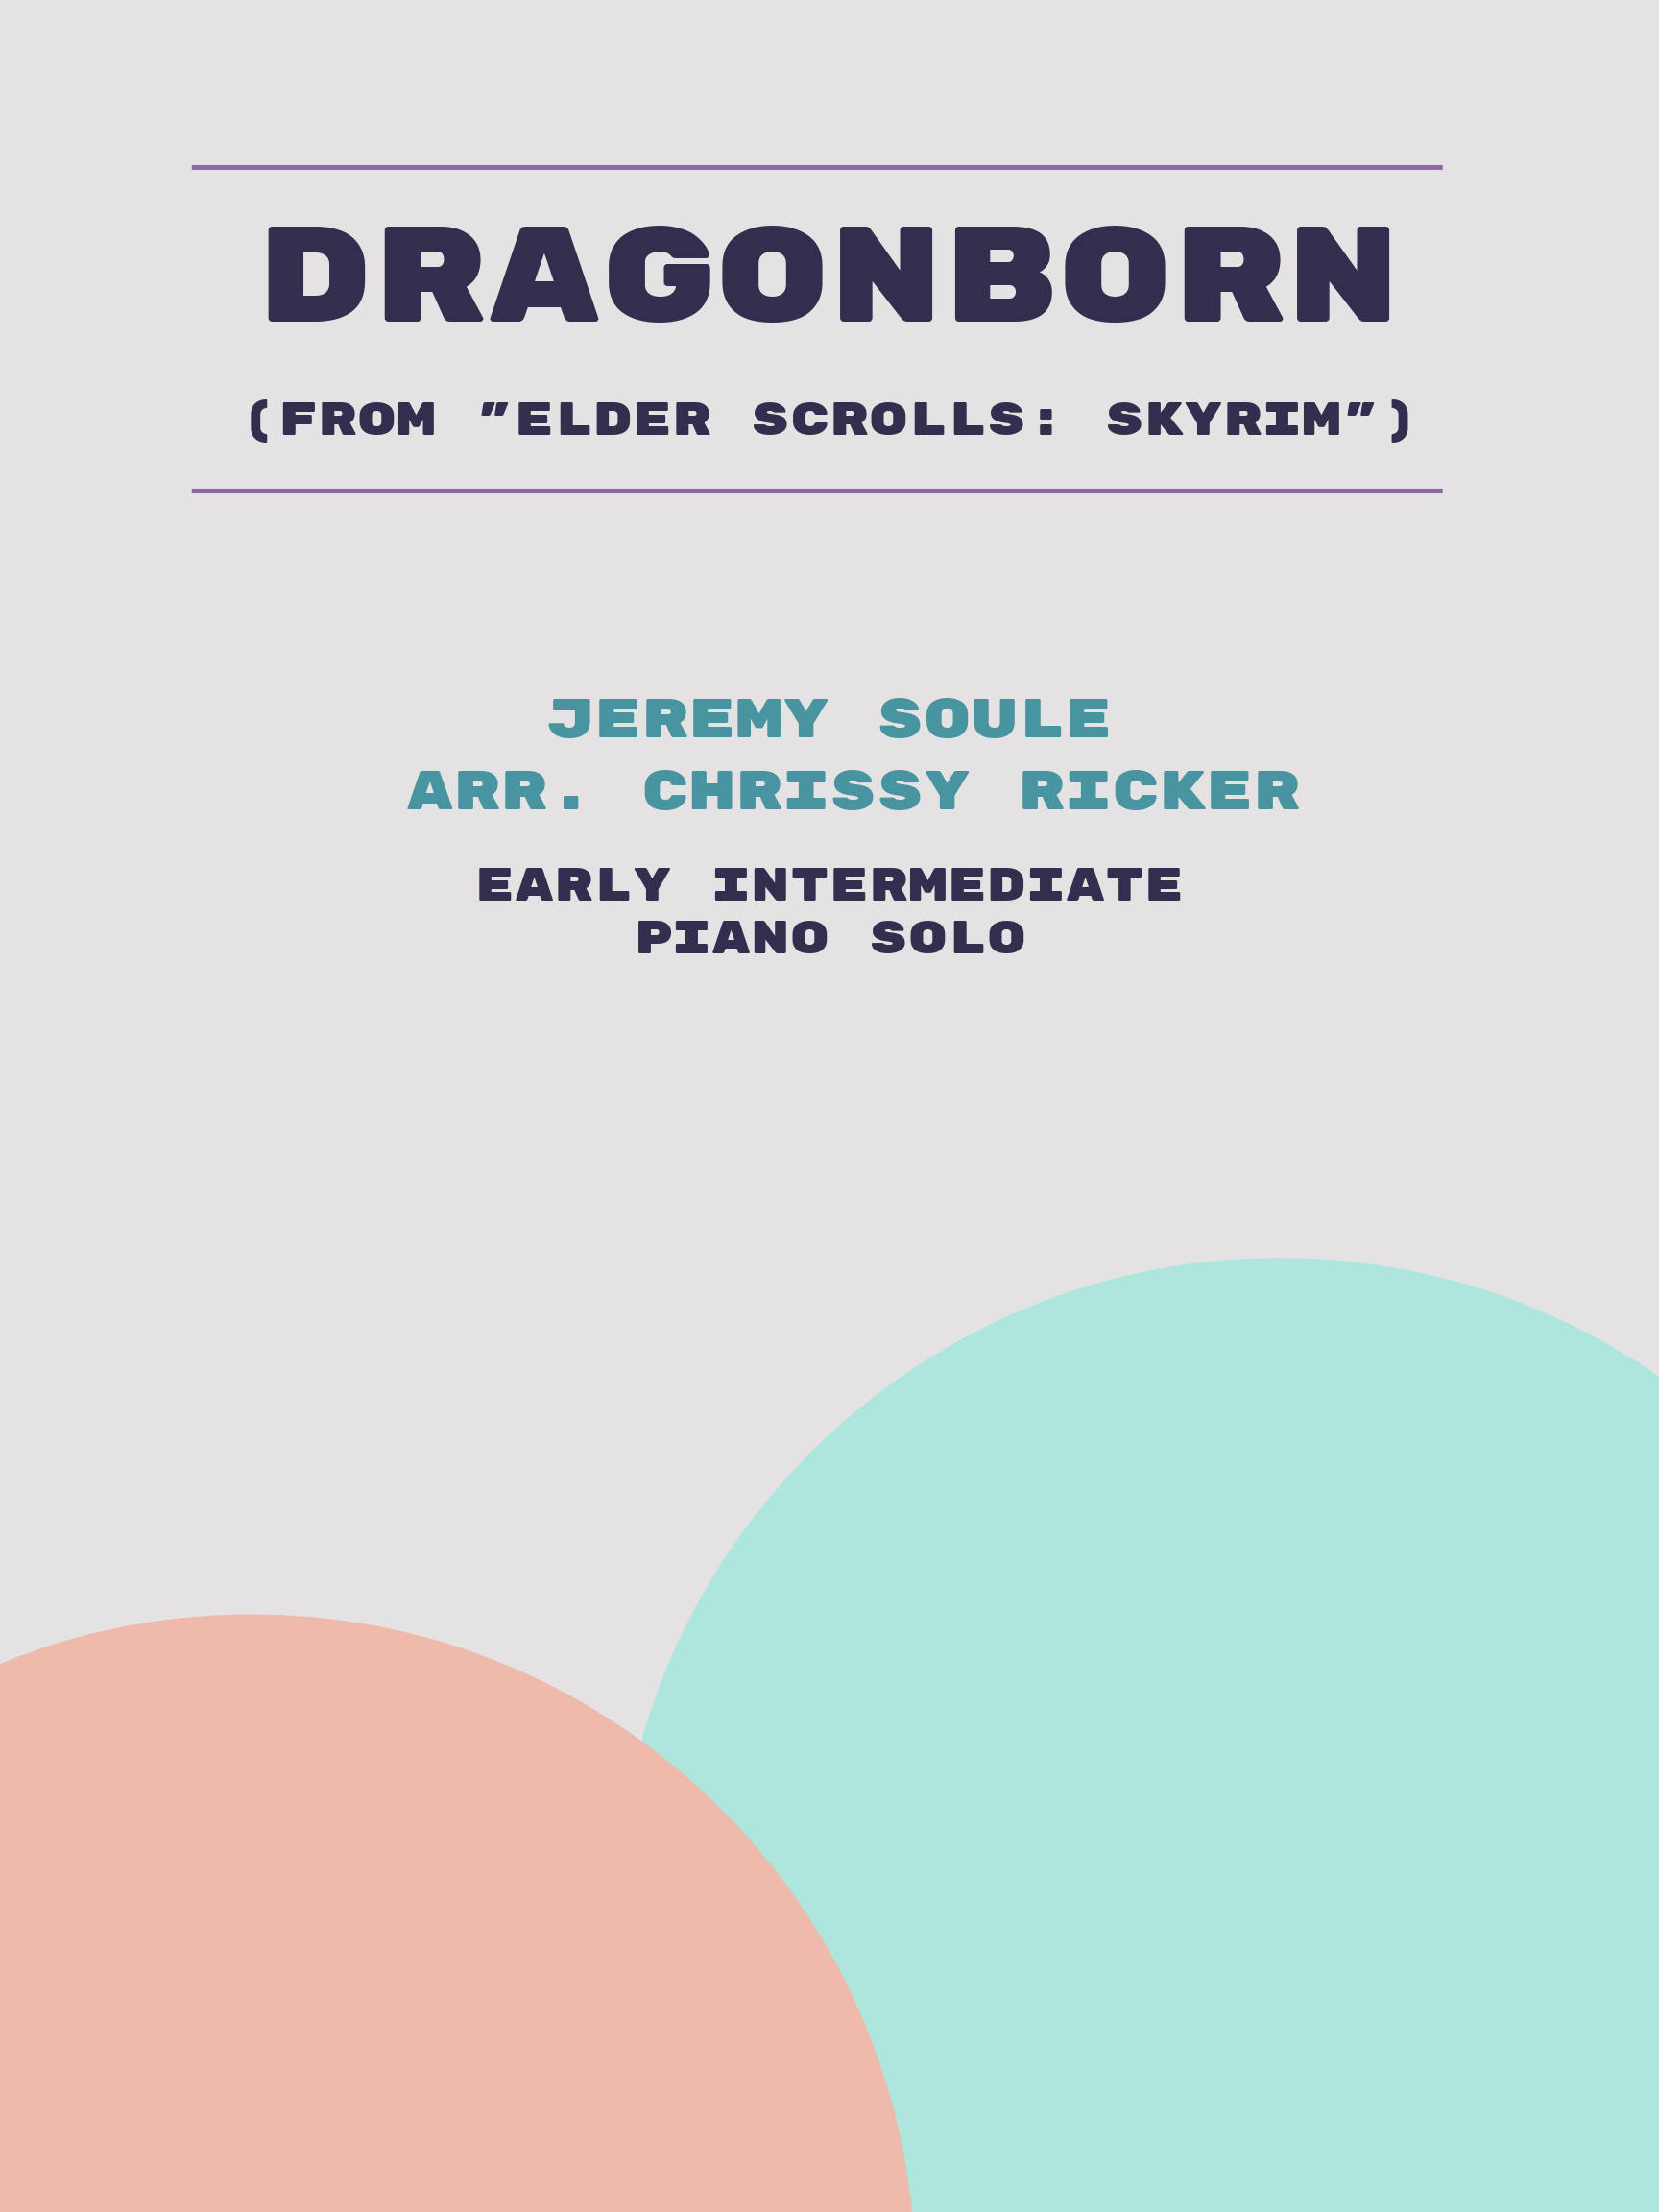 Dragonborn by Jeremy Soule